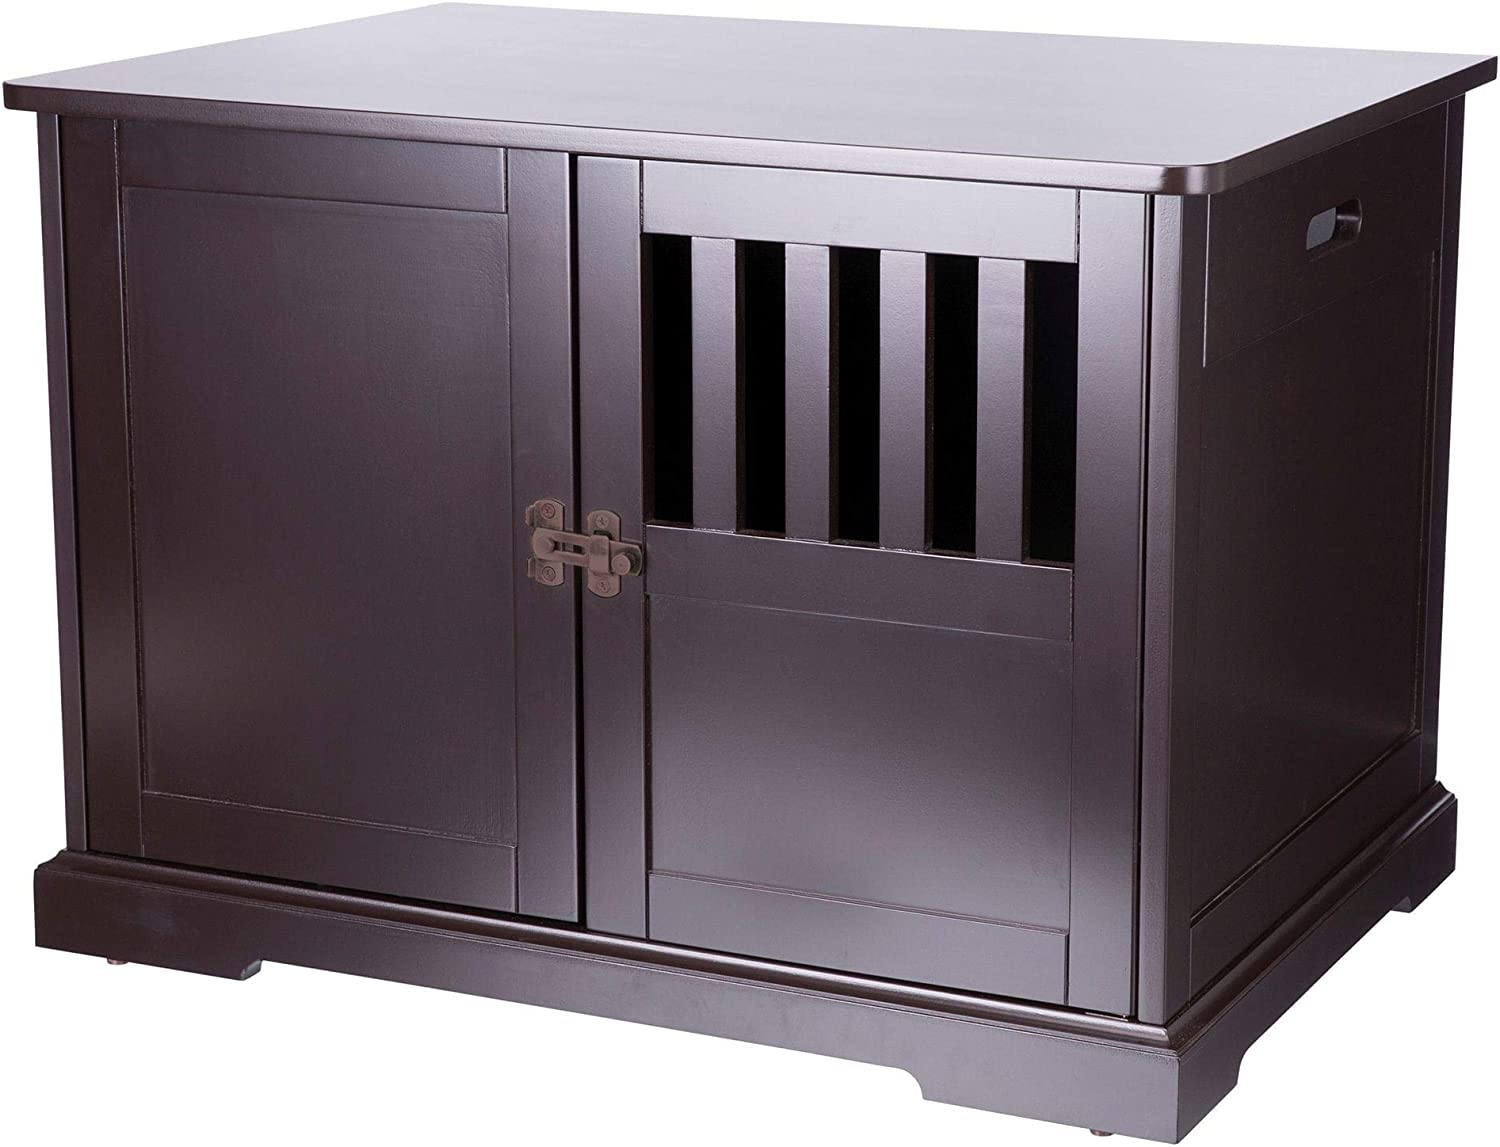 Trixie Pet Products 39524 Wooden Pet Crate/End Table Kennel, M: 75 x 53,3, Brown